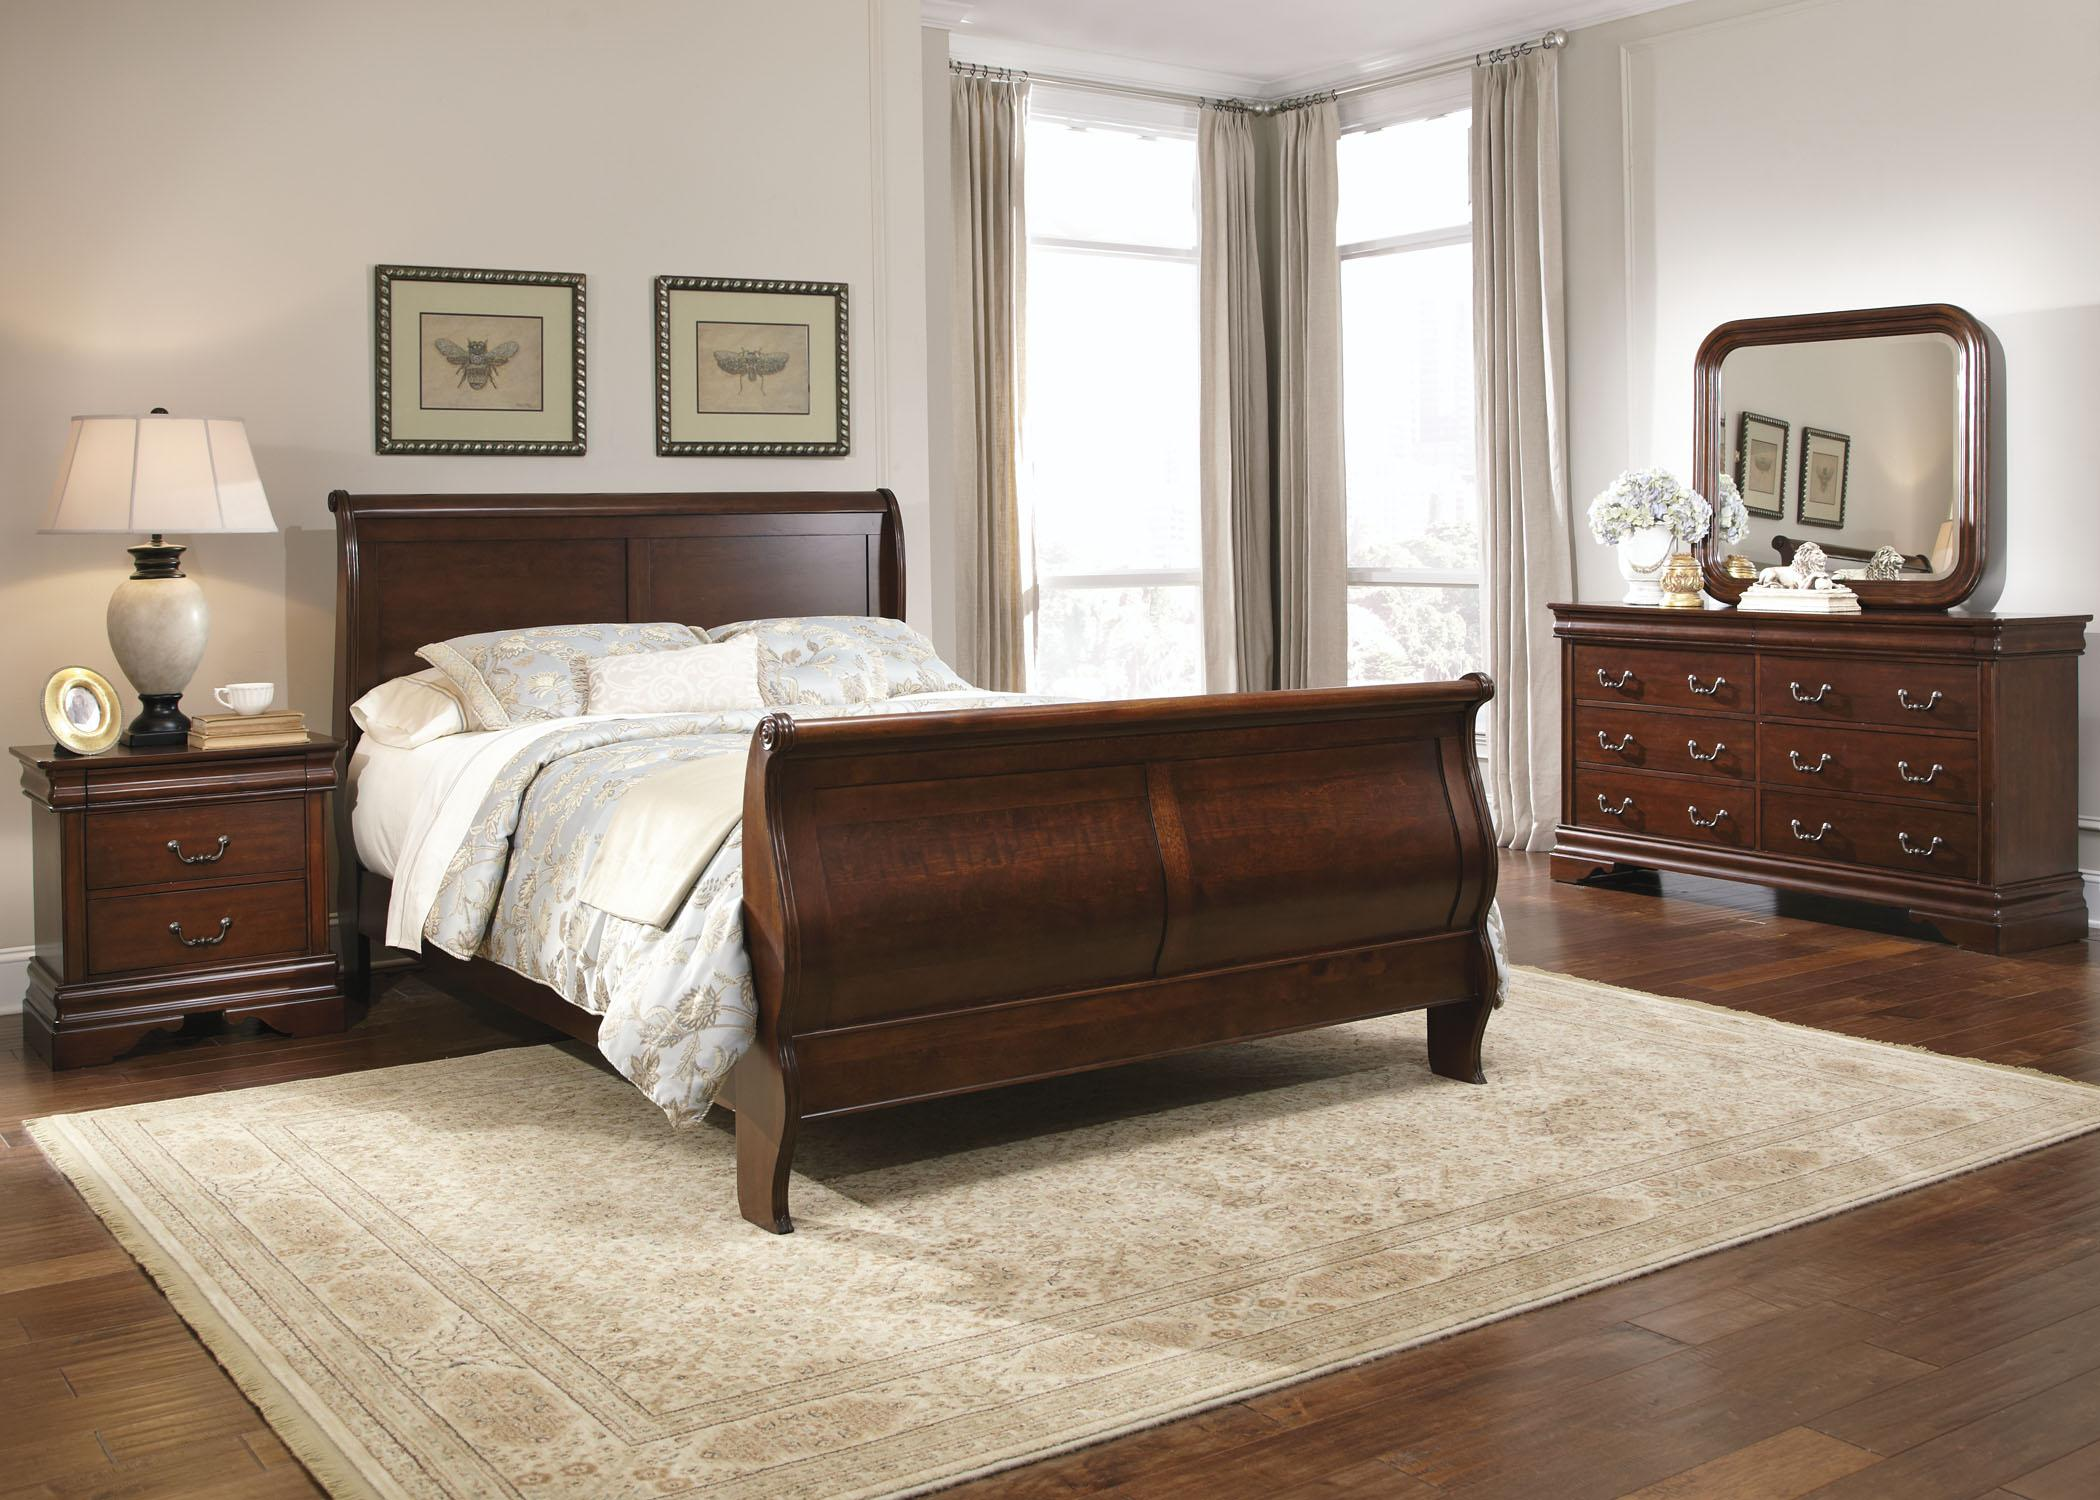 Liberty Furniture Carriage Court Queen Sleigh Bed, Dresser & Mirror, Chest, - Item Number: 709-BR-GP32